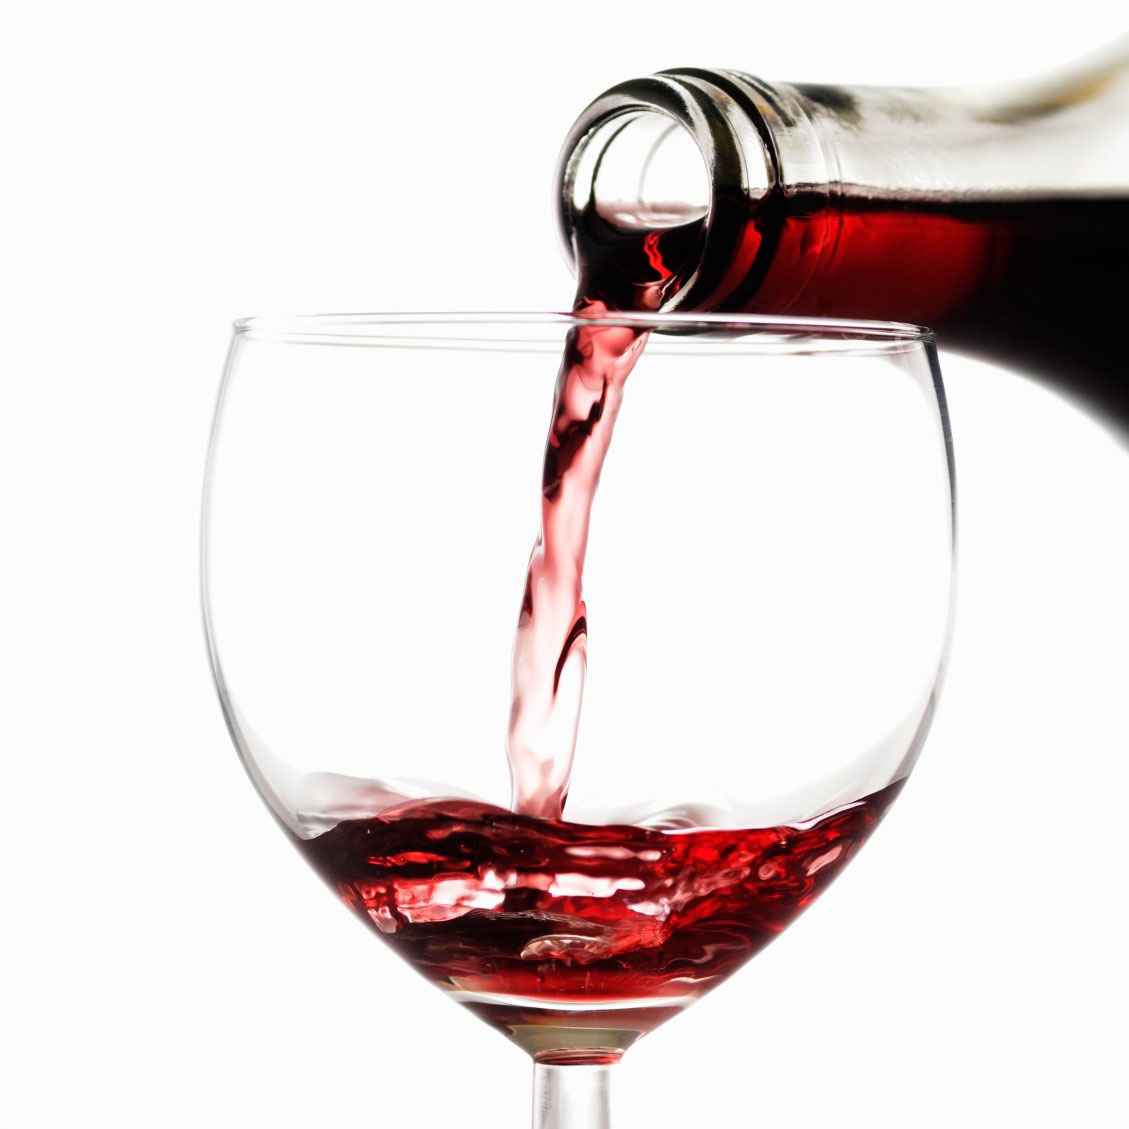 Can You Drink Wine If Trying To Lose Weight